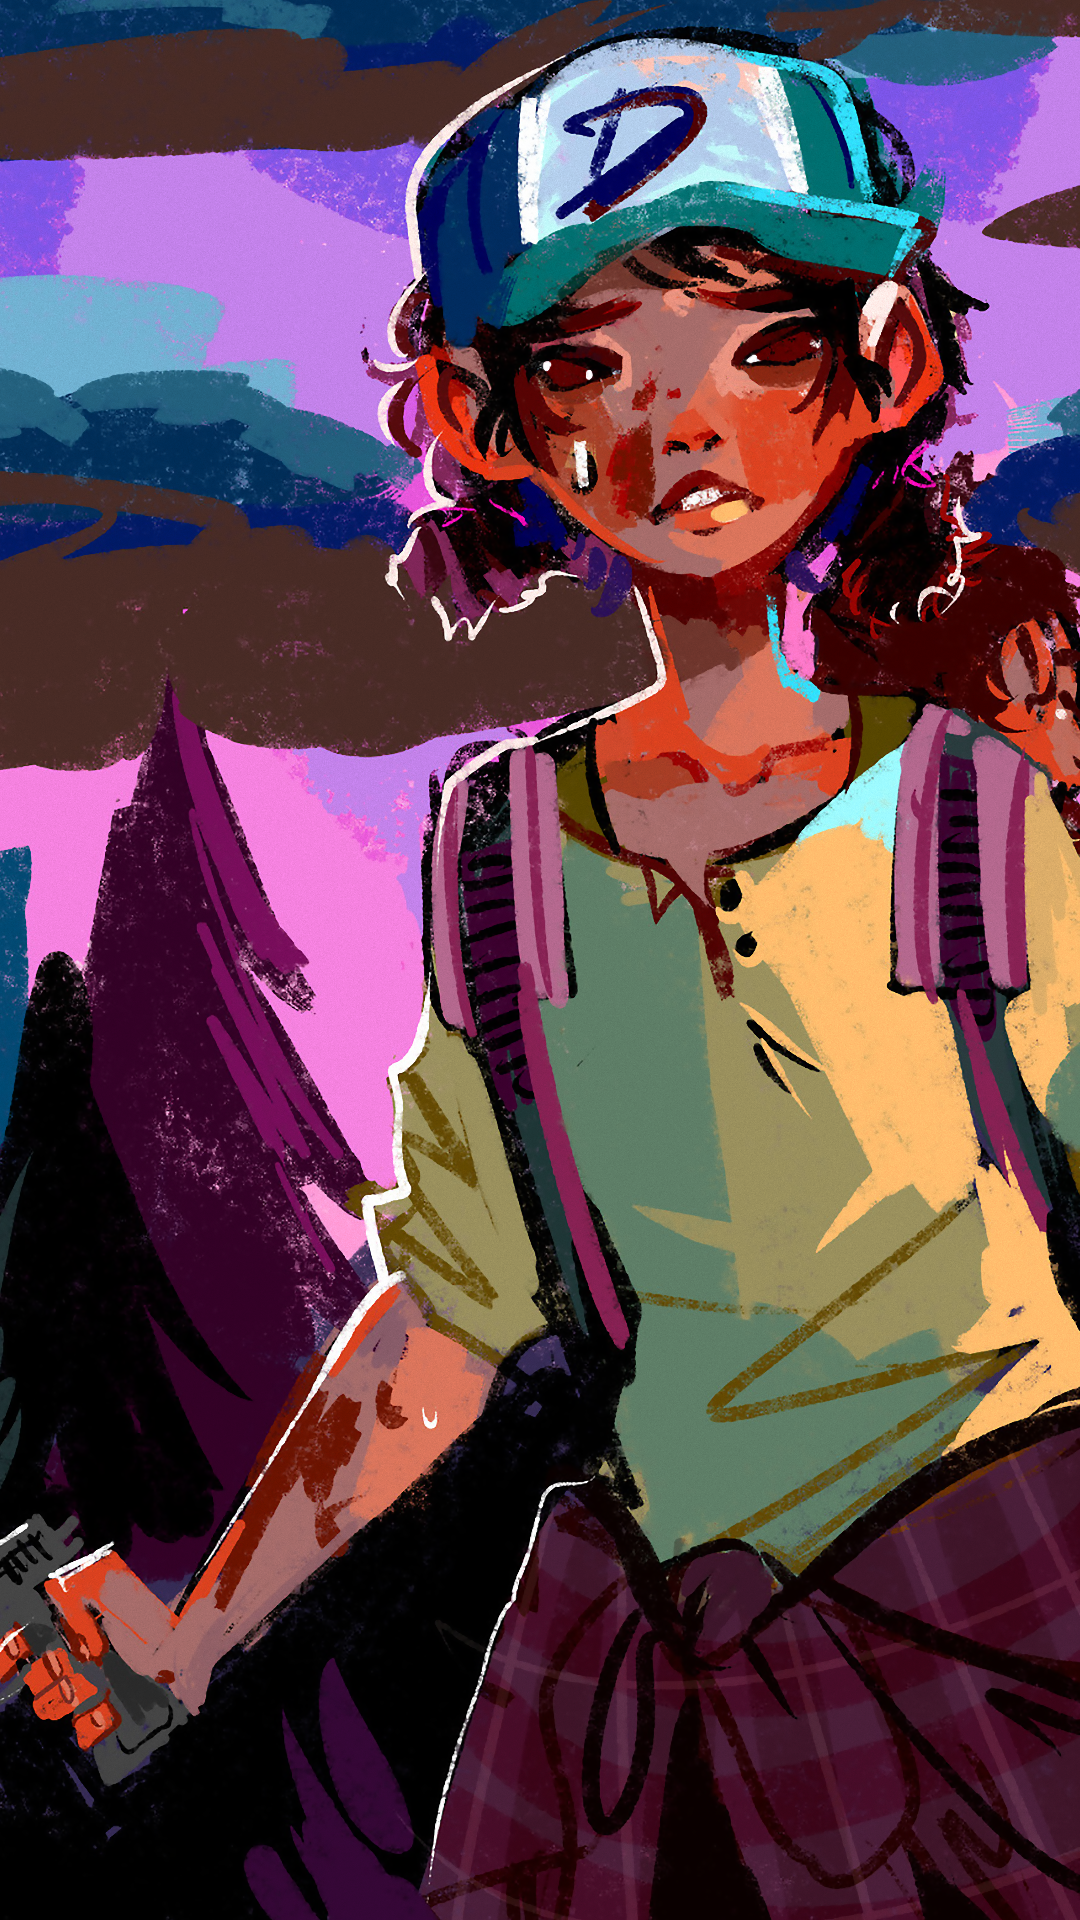 I Worked On This Wallpaper Of Clementine Twdg Clementine